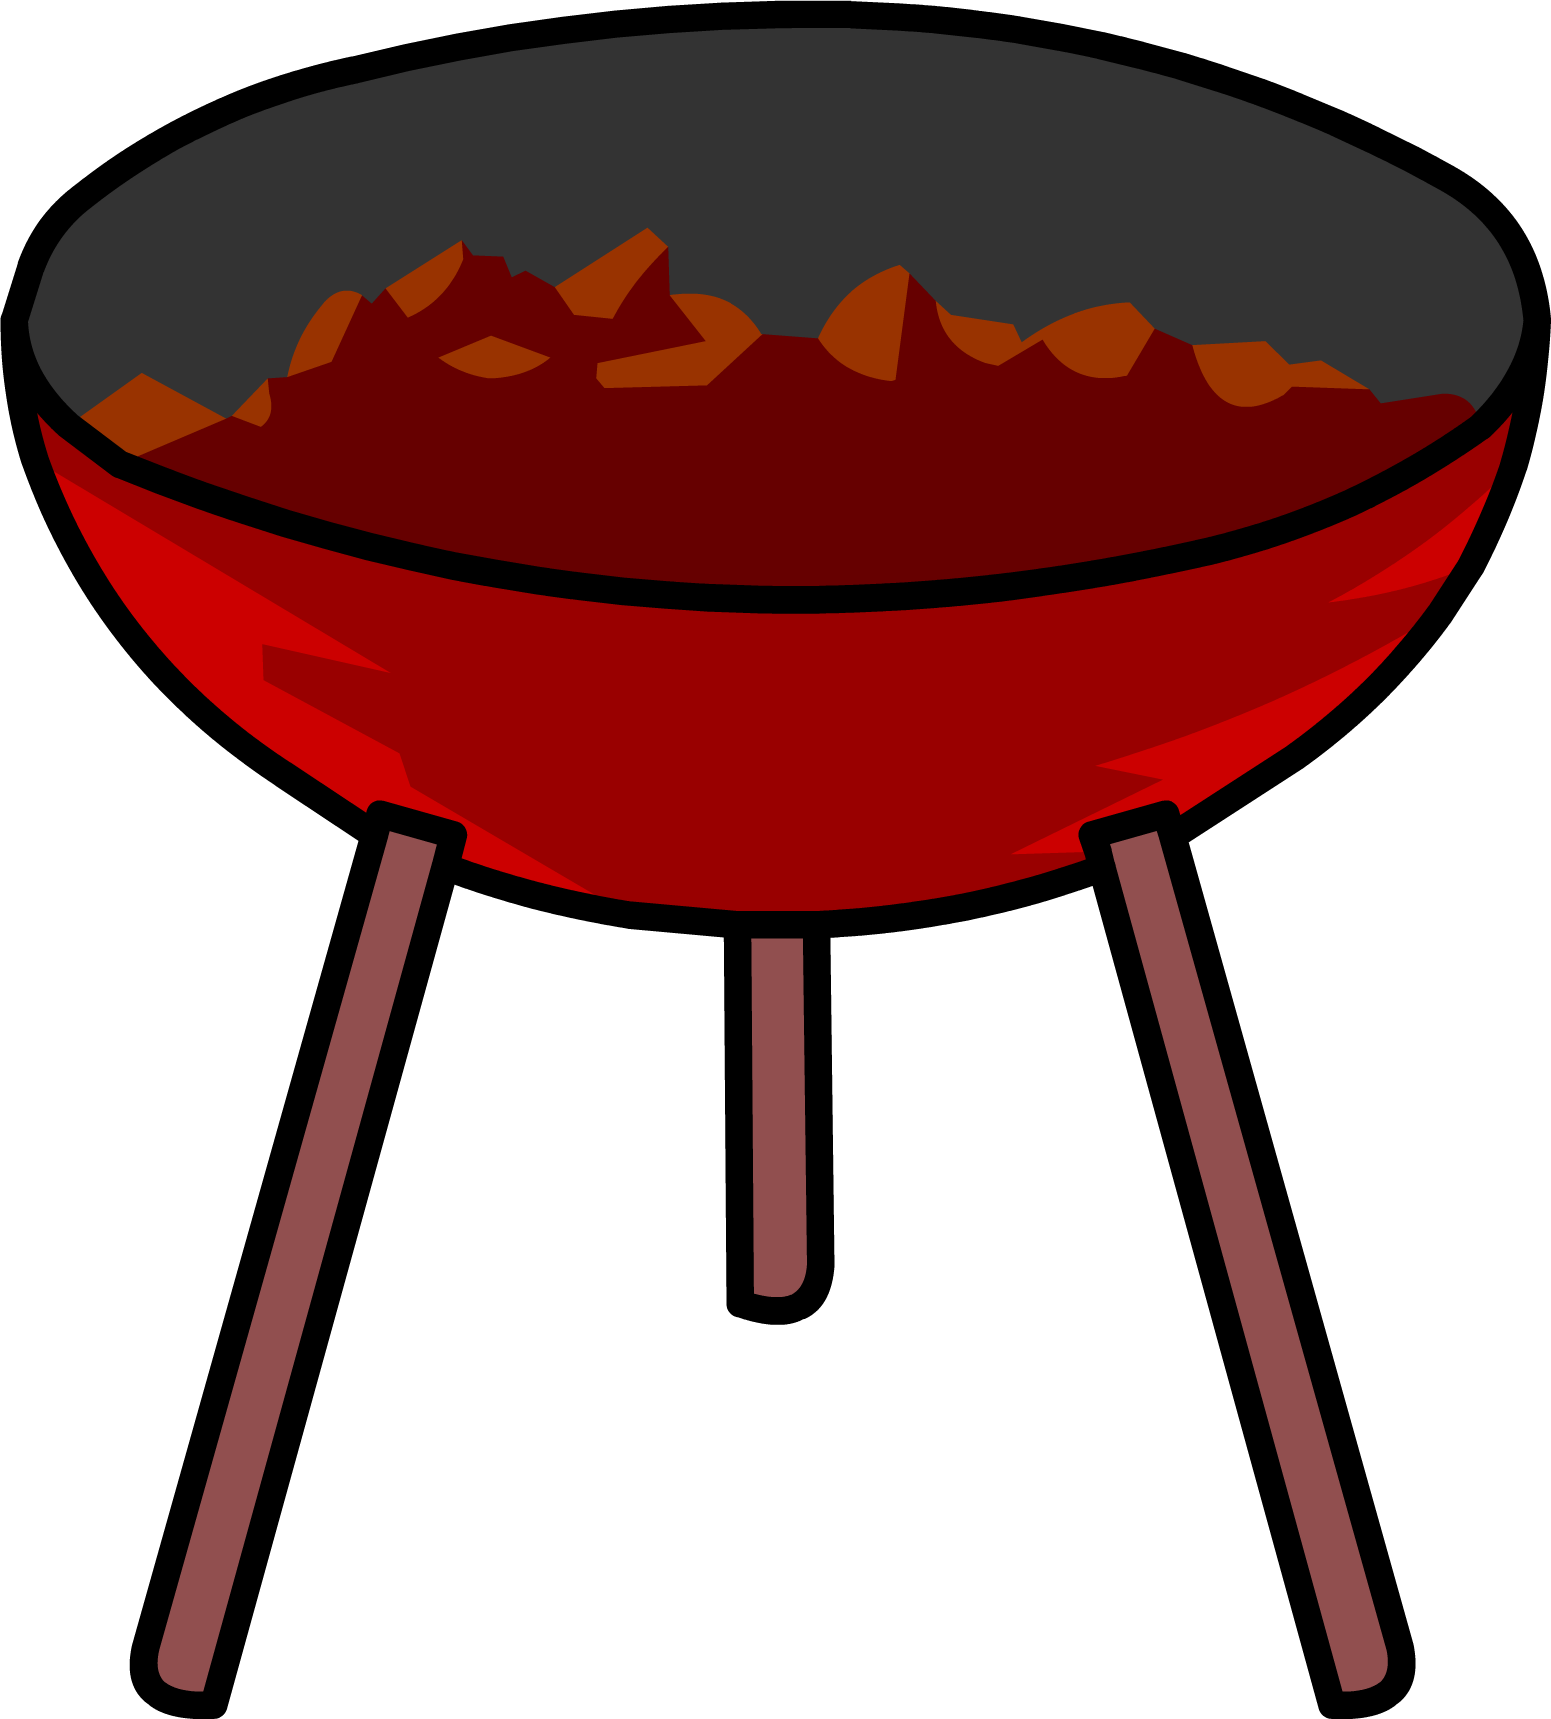 Barbecue png images free. Stamp clipart bbq